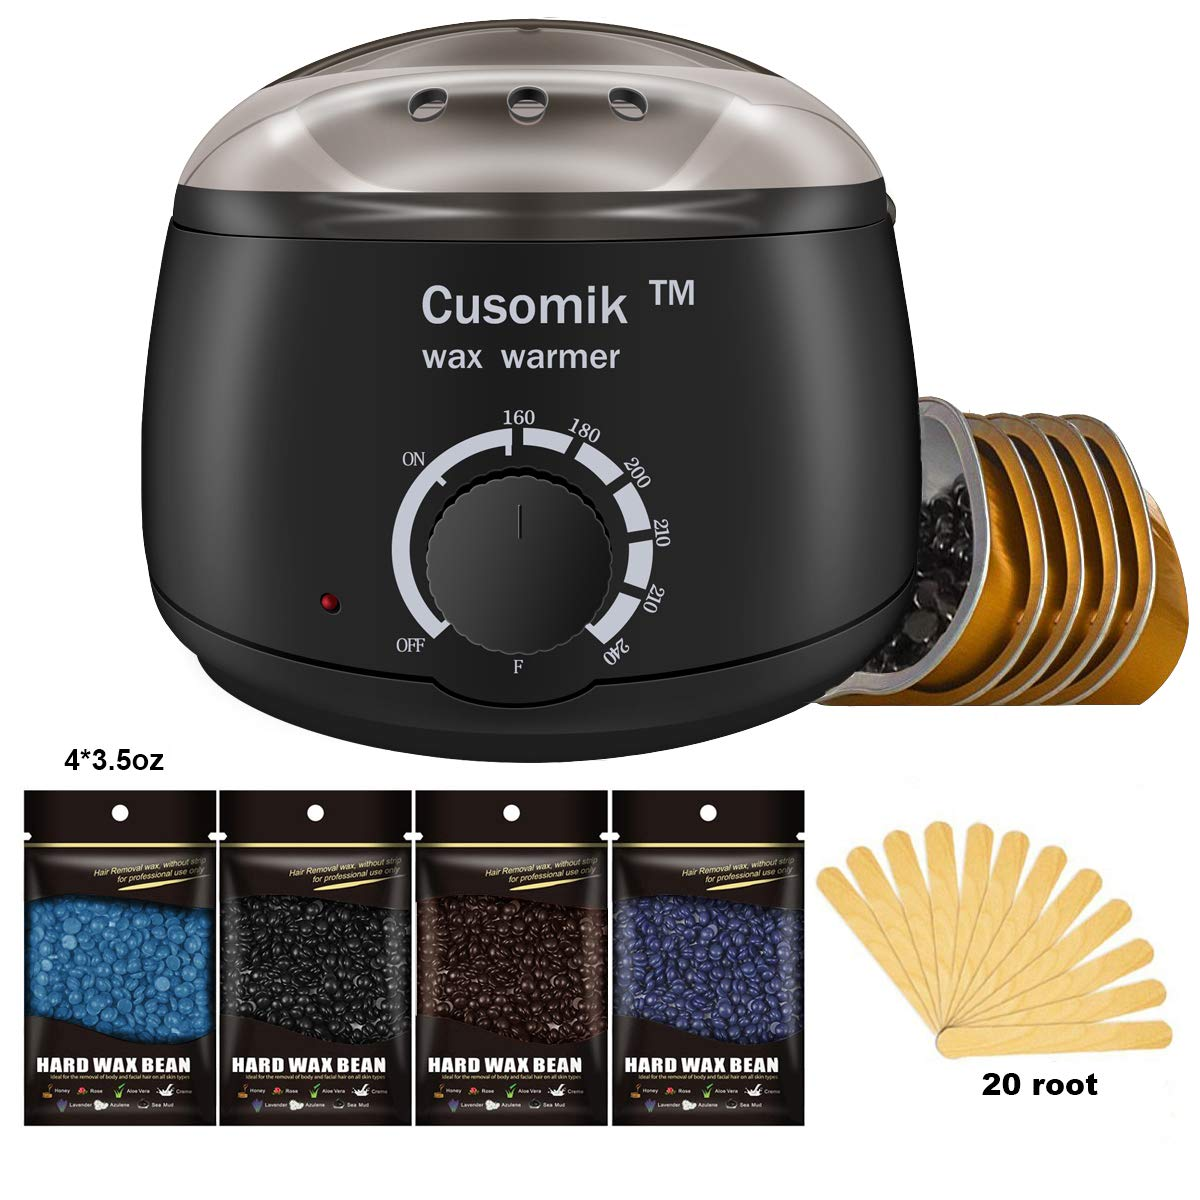 Wax Warmer - Cusomik Waxing Hair Removal Kit Wax Heater with 4 Hard Wax Beans and 20 Wax Applicator Sticks Summer Ready-Painlessly Remove Hair From Bikini Arm Legs at Home Cusomik-ww0-us